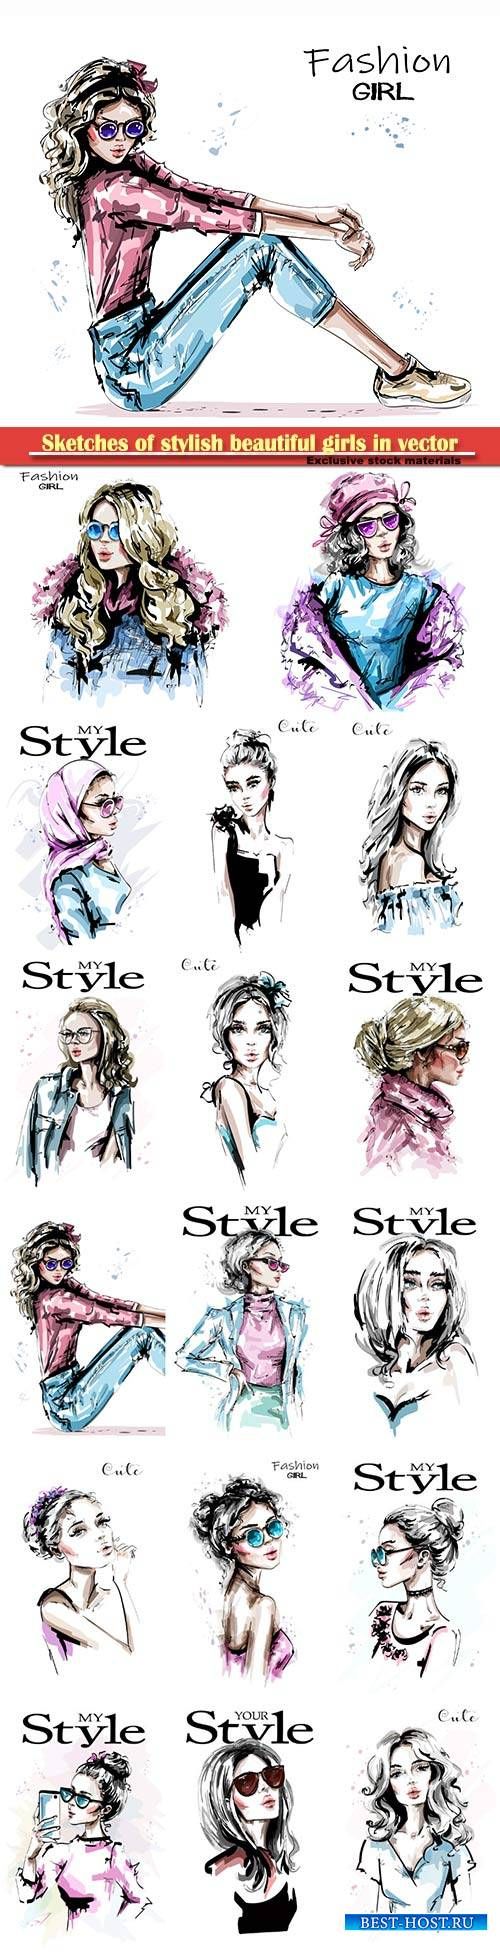 Sketches of stylish beautiful girls in vector